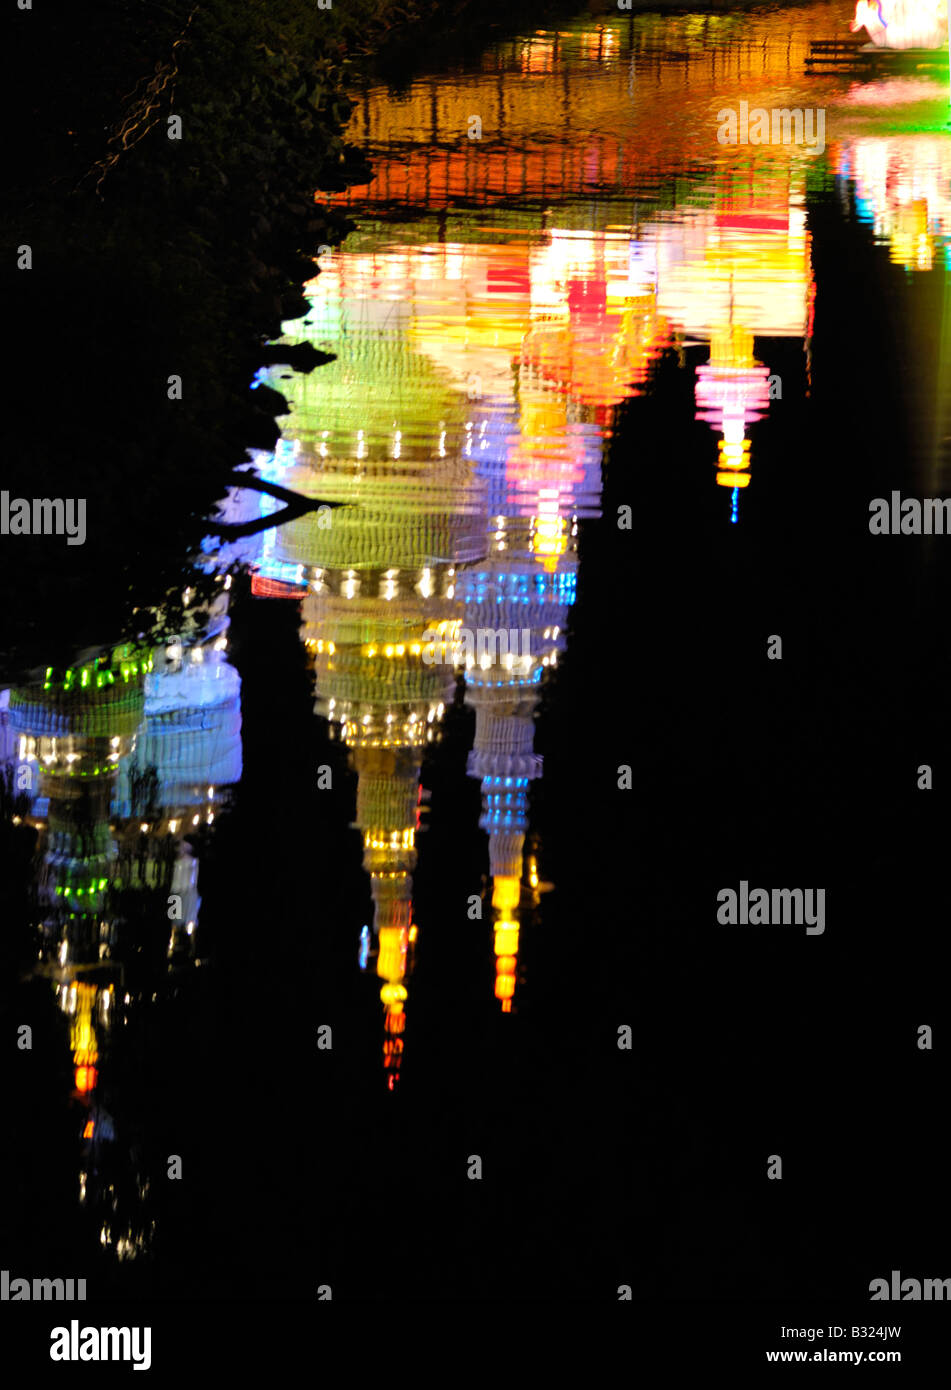 Chinese Lantern Festival Photo Stock